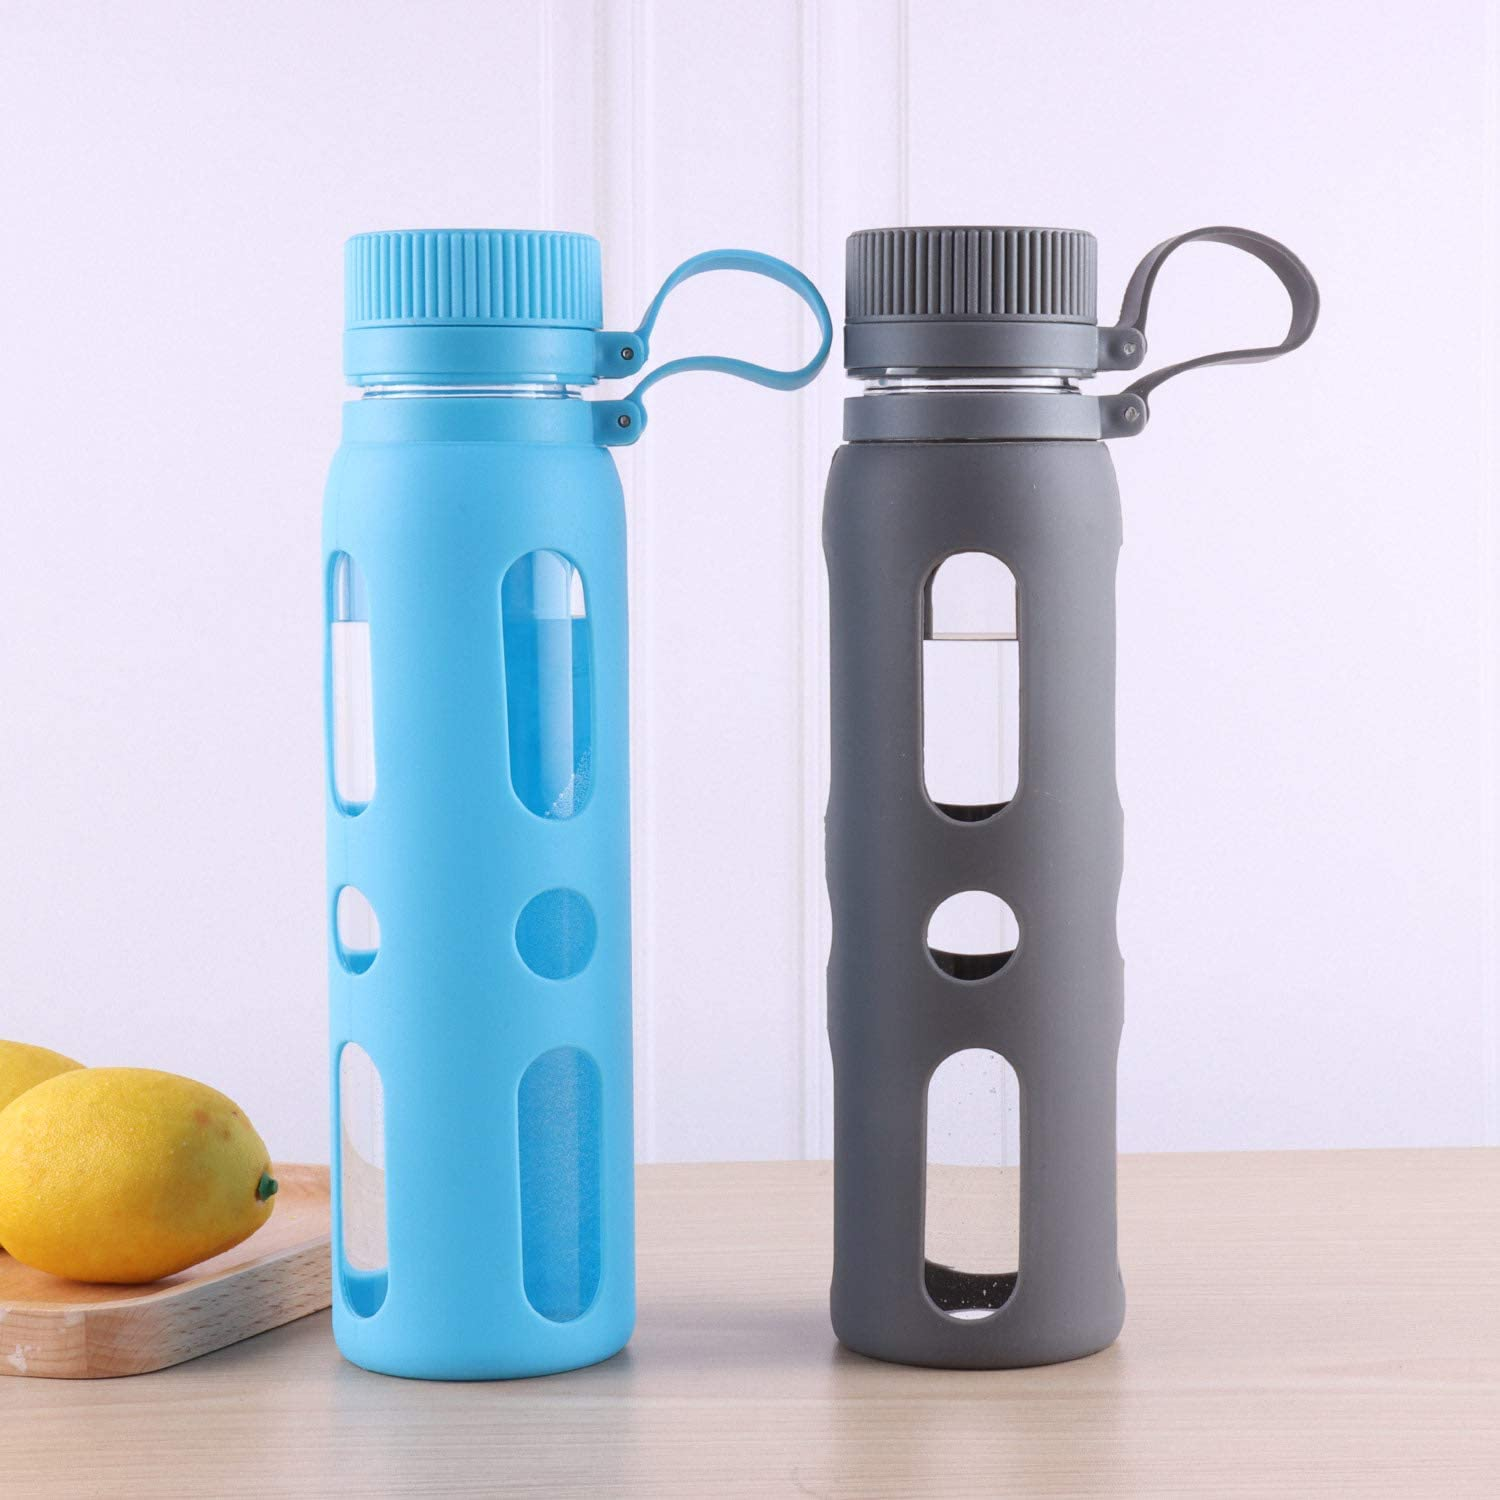 Slip Silicone Sleeve and BPA-Free Lid Sivaphe 20 oz Glass Water Bottle with Non